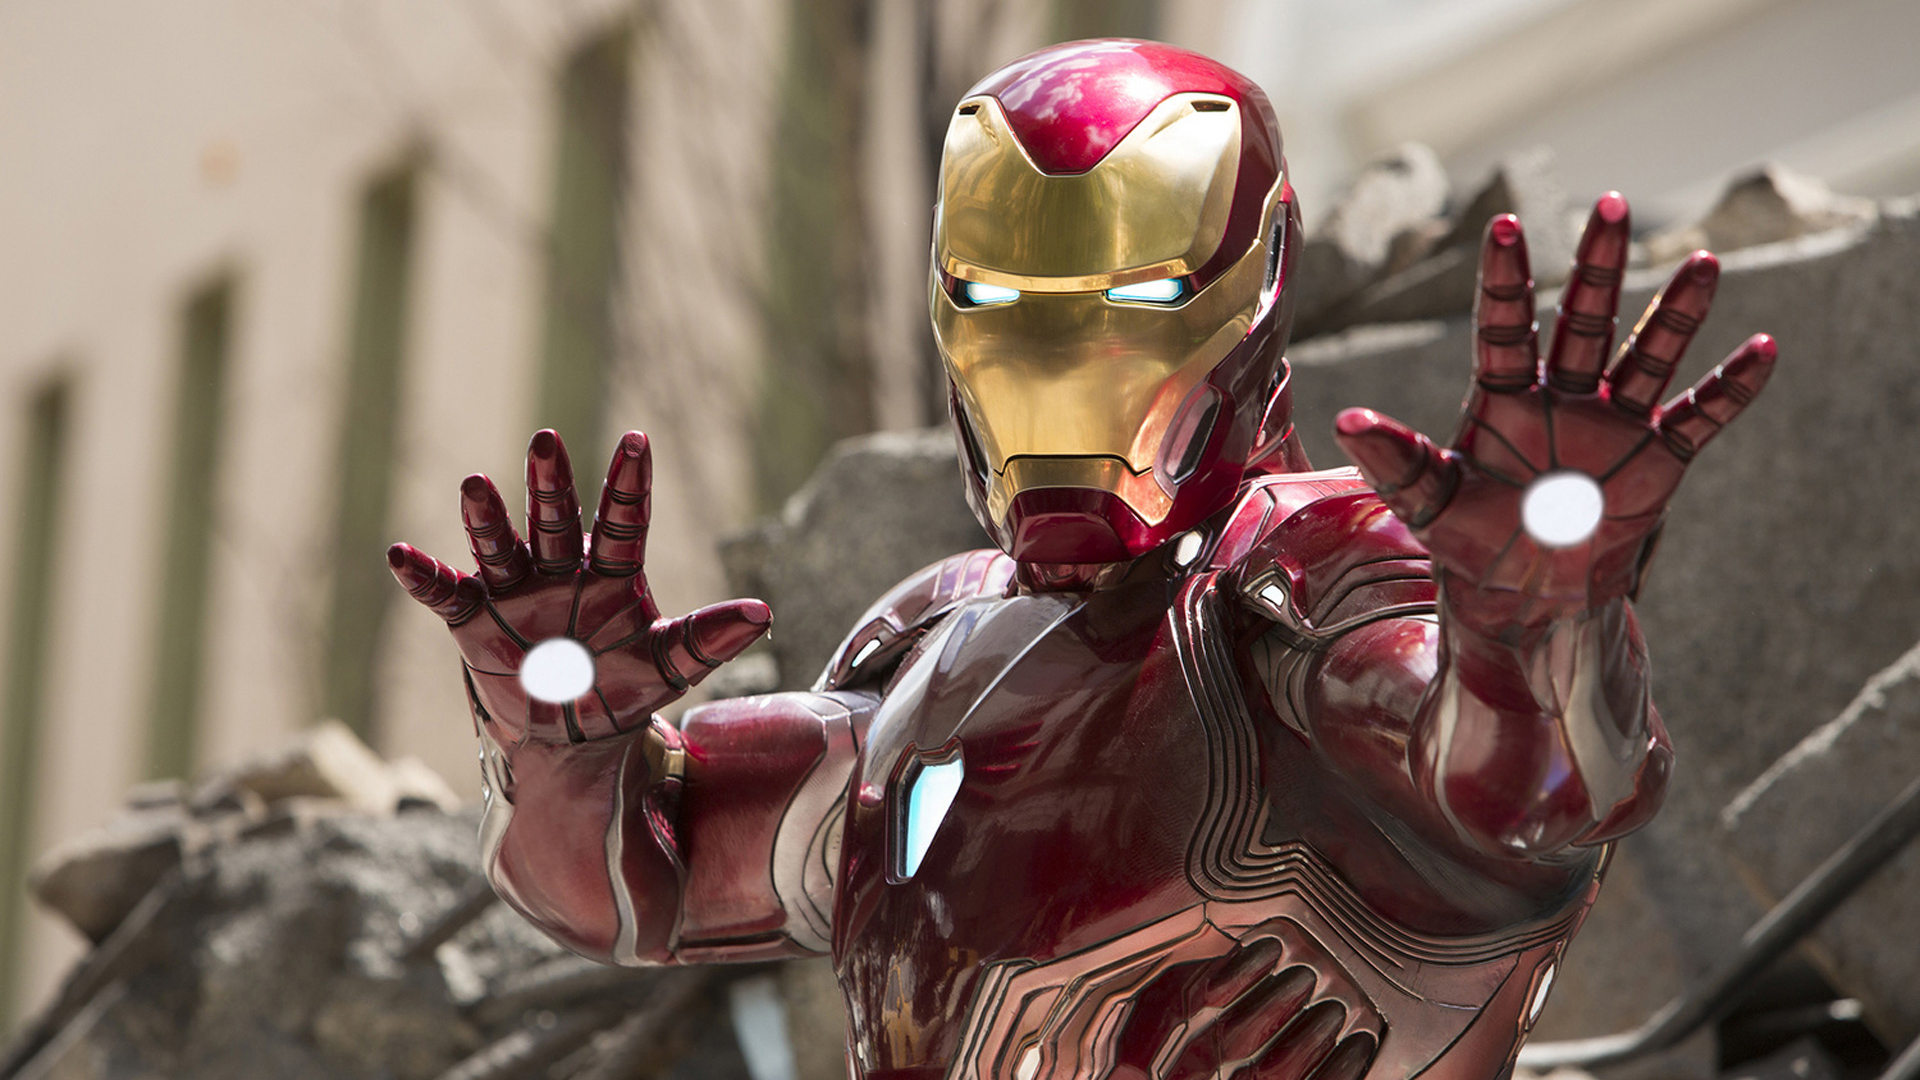 Avengers Endgame Iron Man Suit 307298 Hd Wallpaper